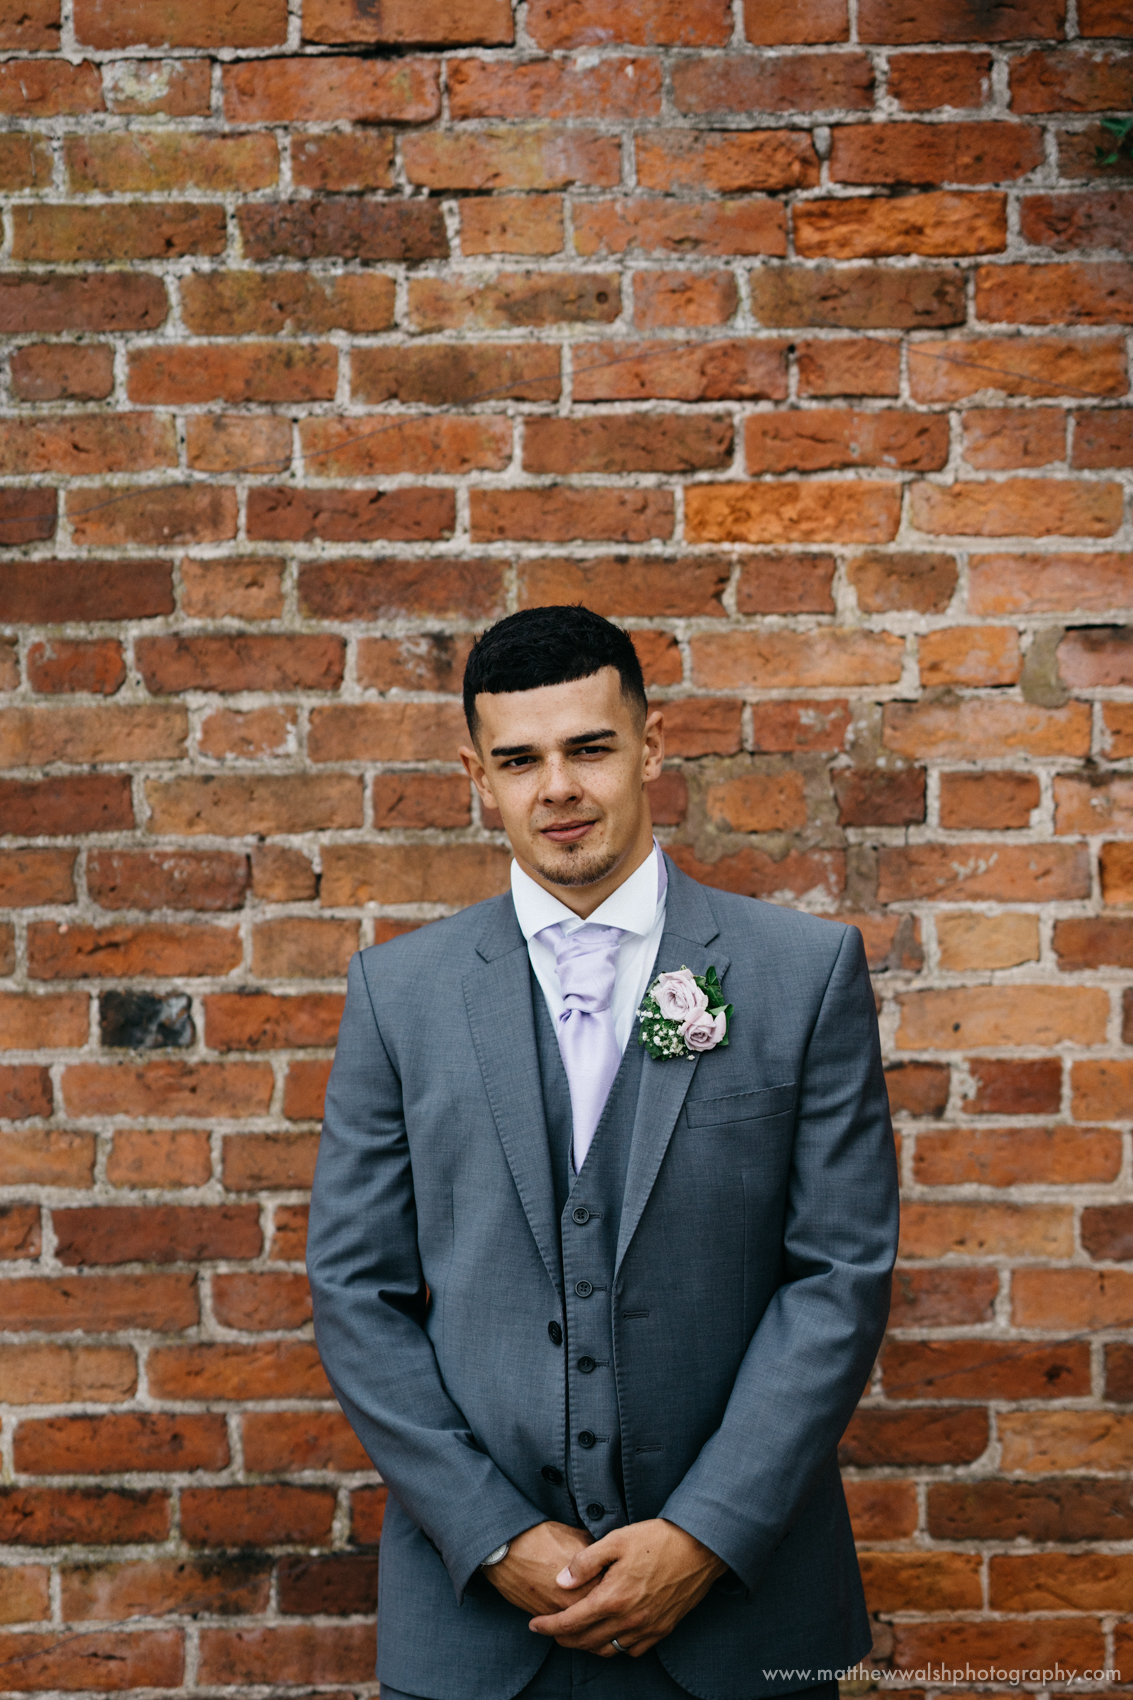 A portrait of the groom on his wedding day